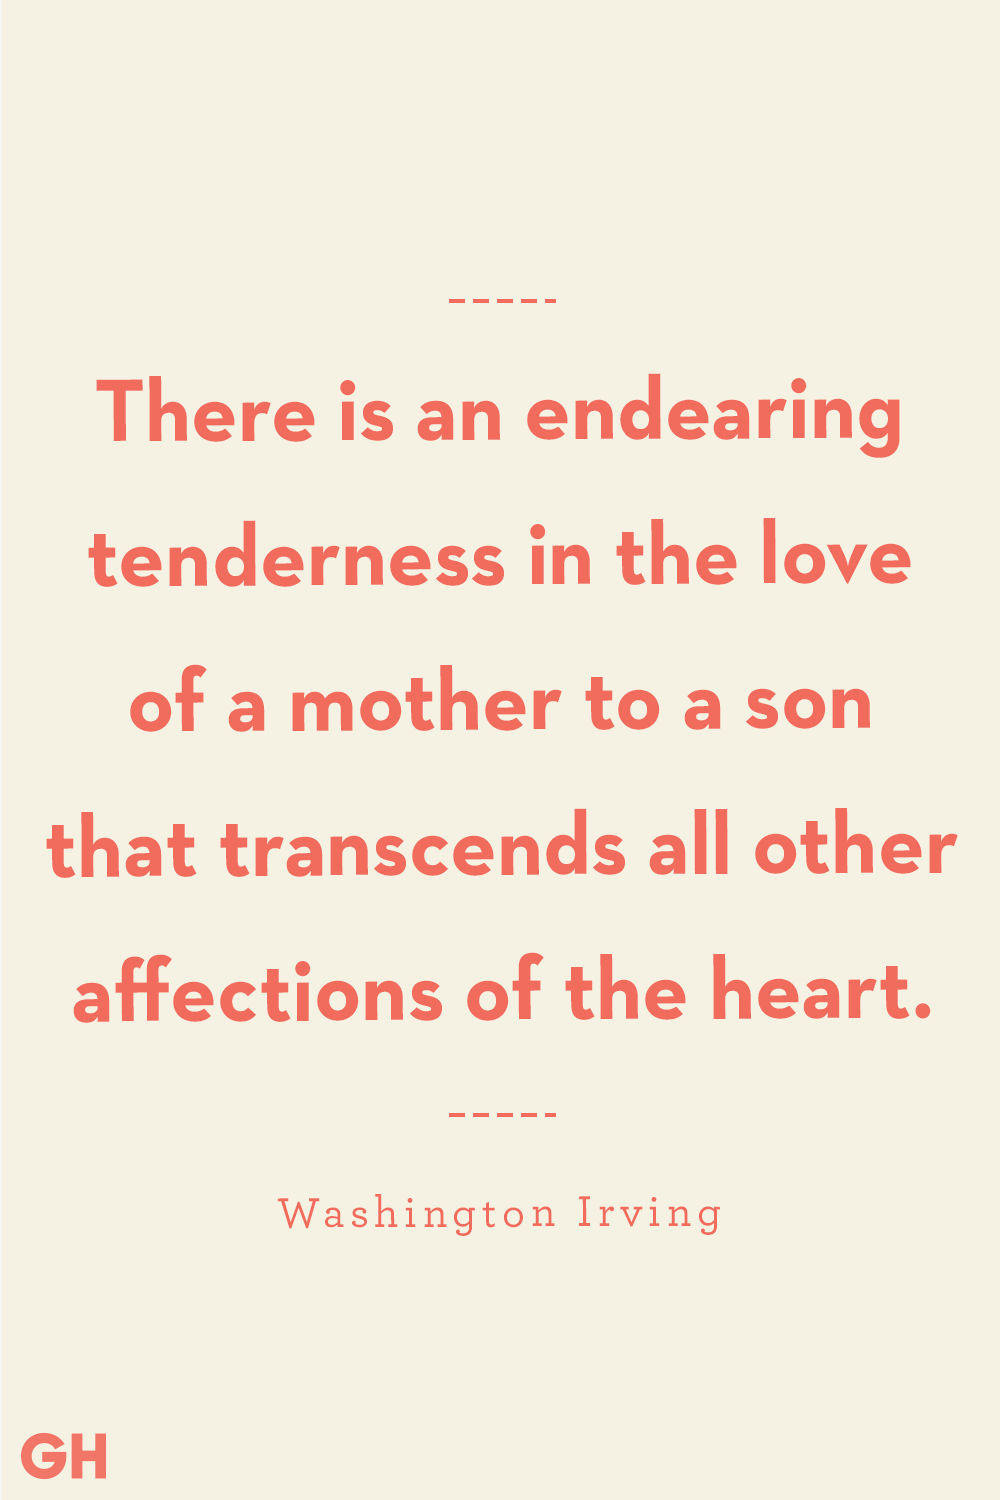 20 Heartfelt Mother-Son Quotes - Mother and Son Sayings